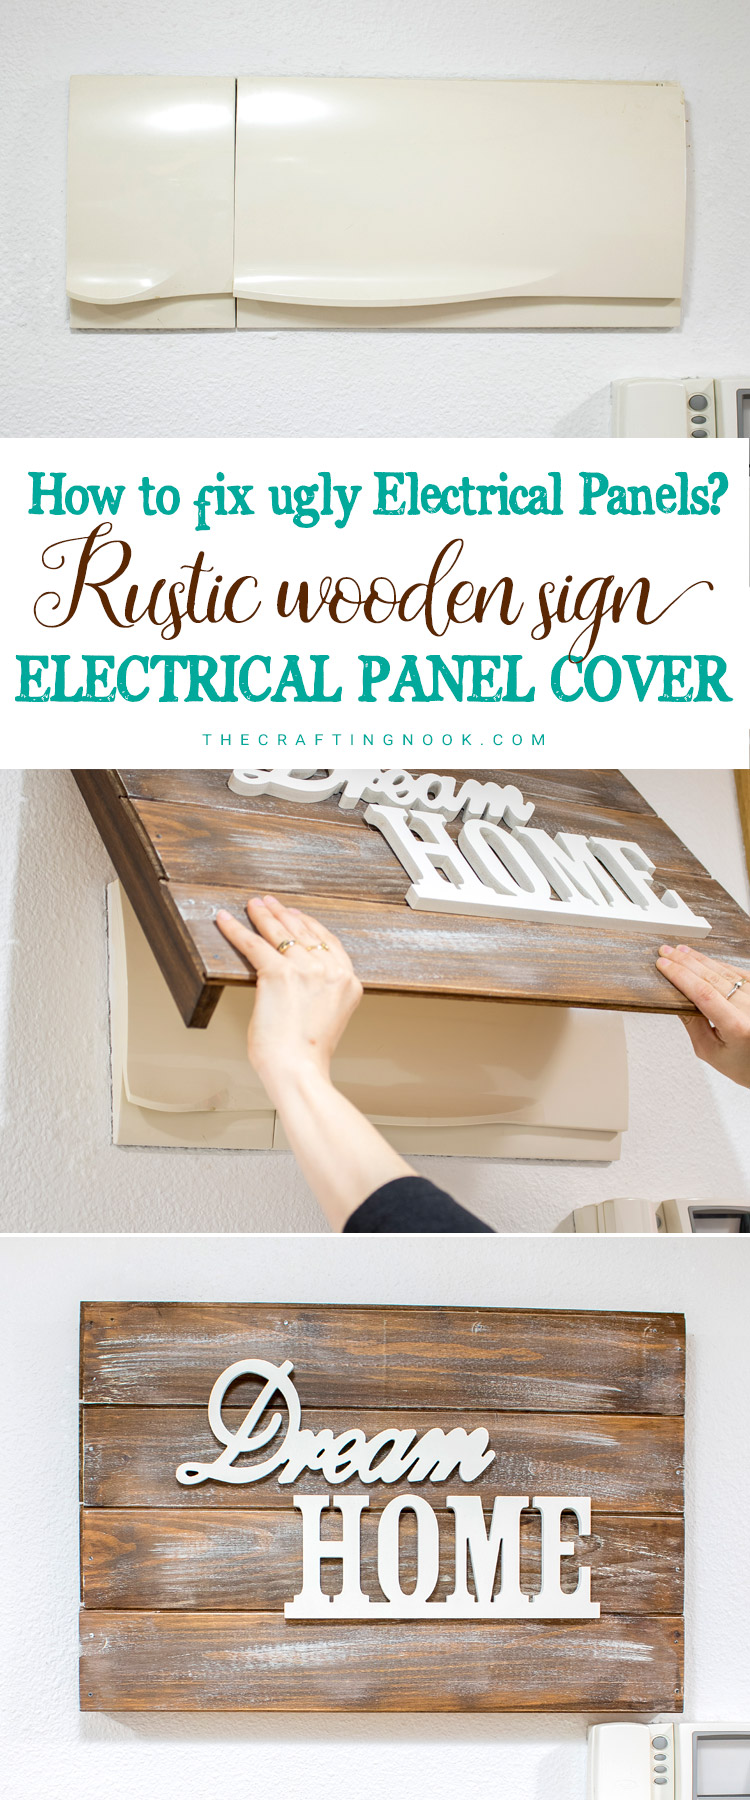 medium resolution of diy rustic wooden sign electrical panel cover